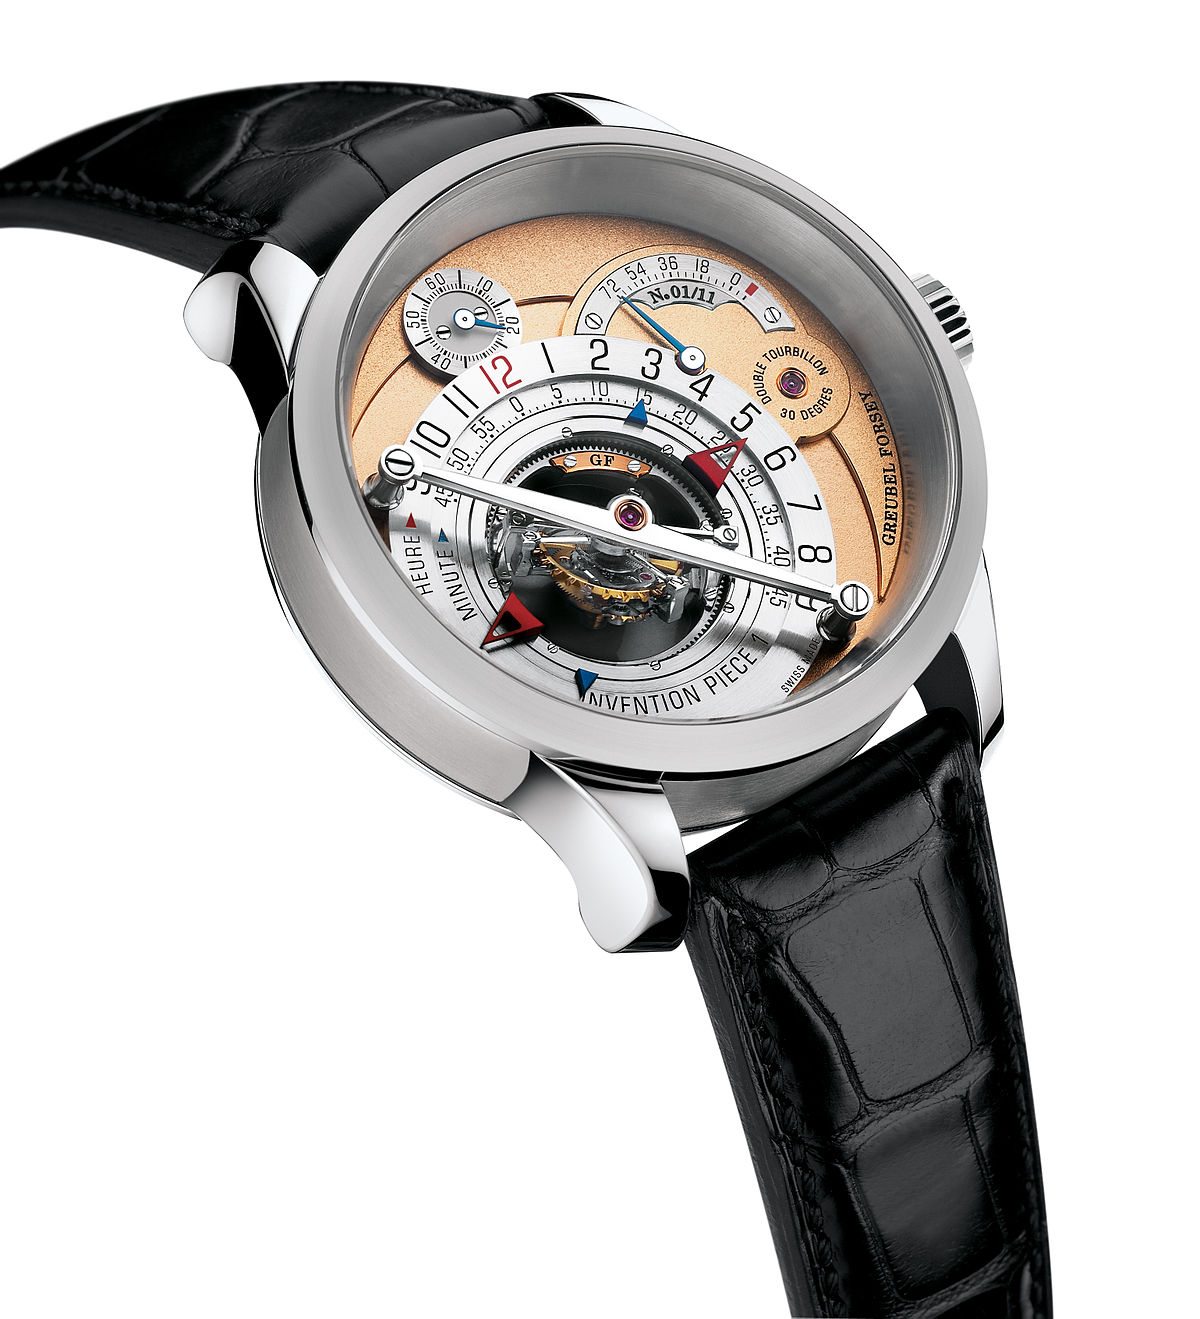 Complication horology wikipedia gumiabroncs